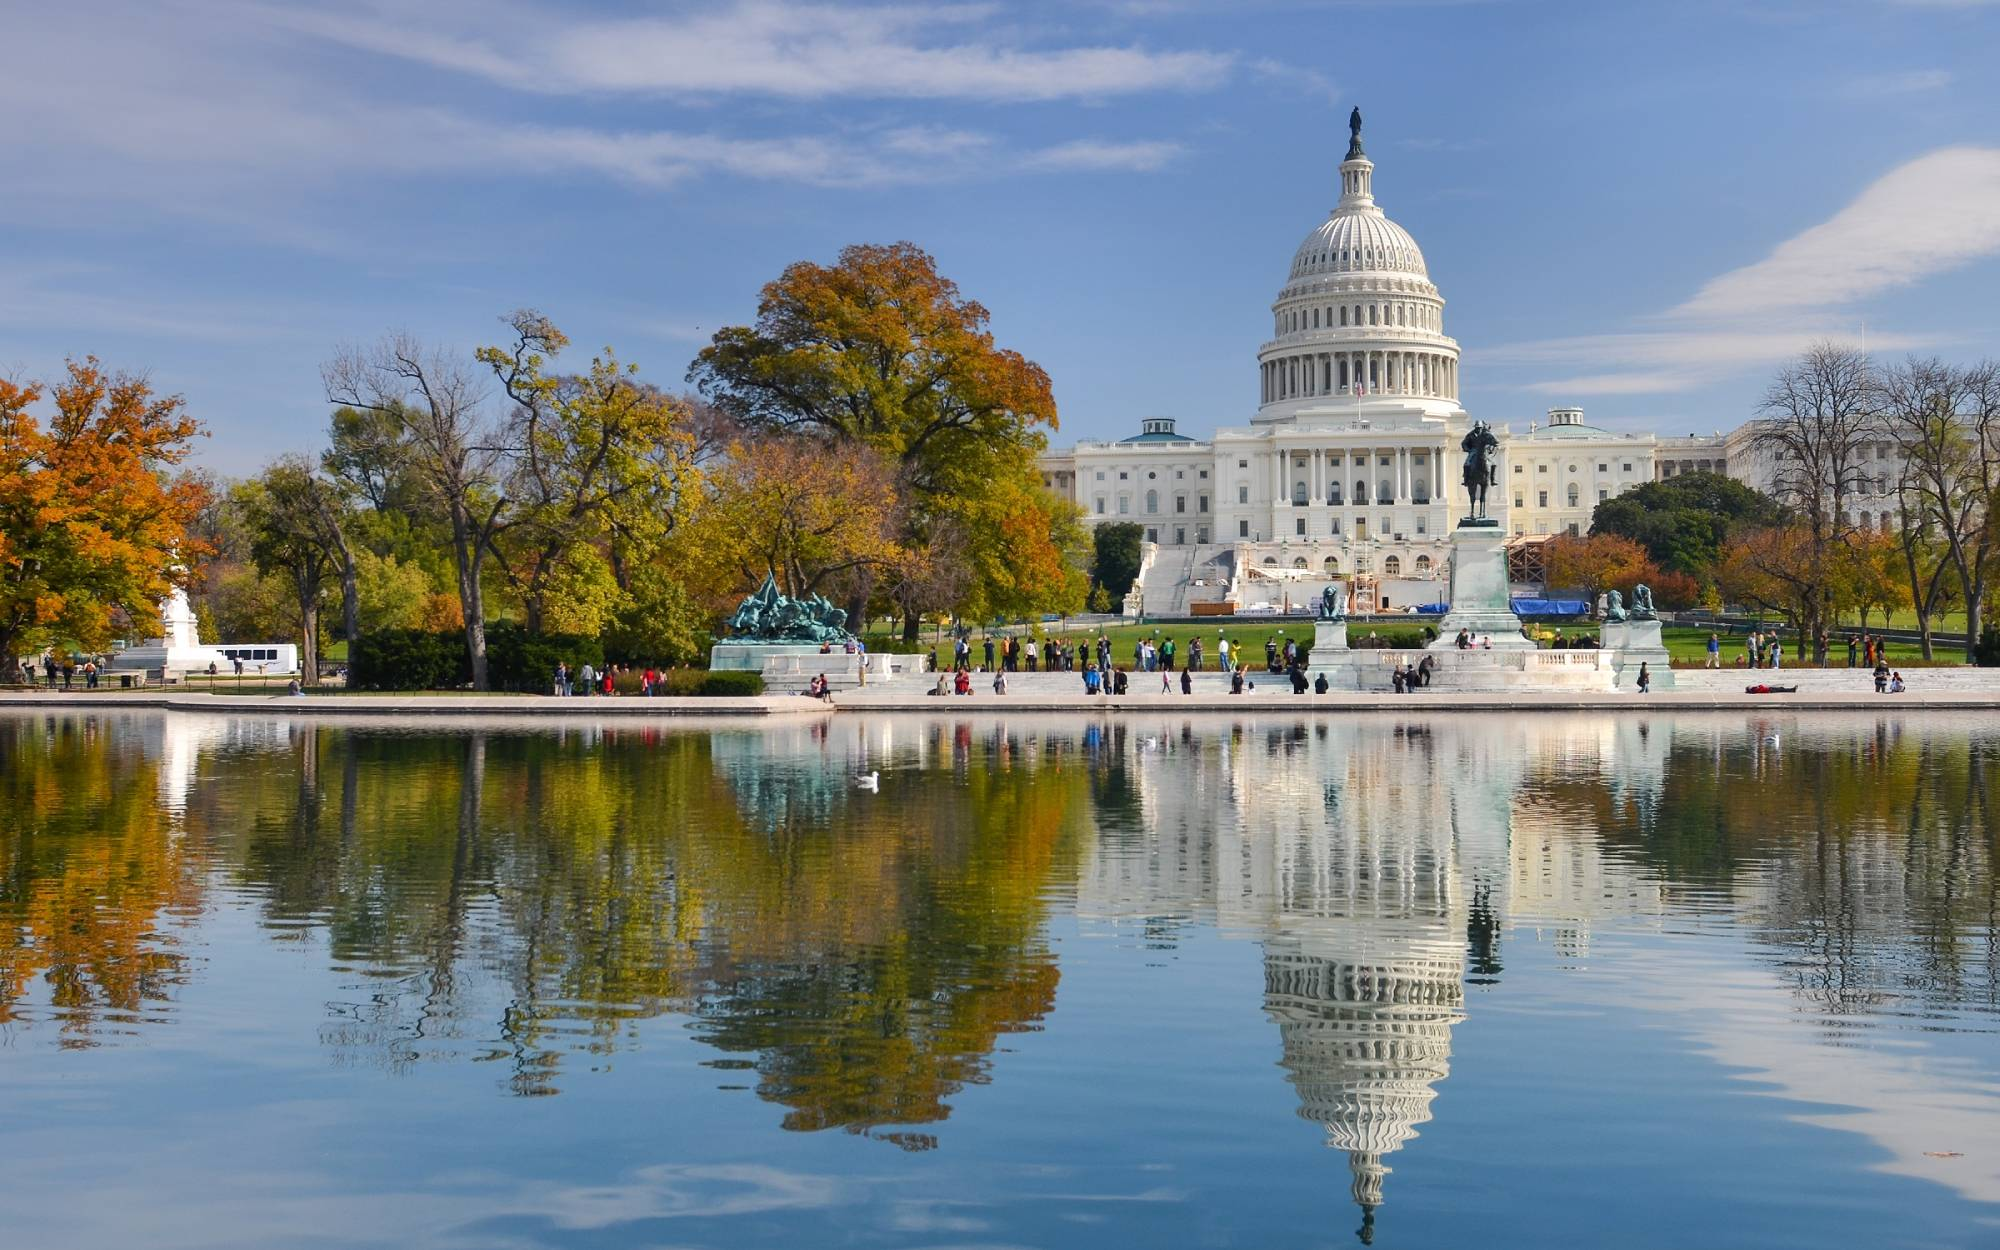 The Best Things To Do In Washington, D.C.